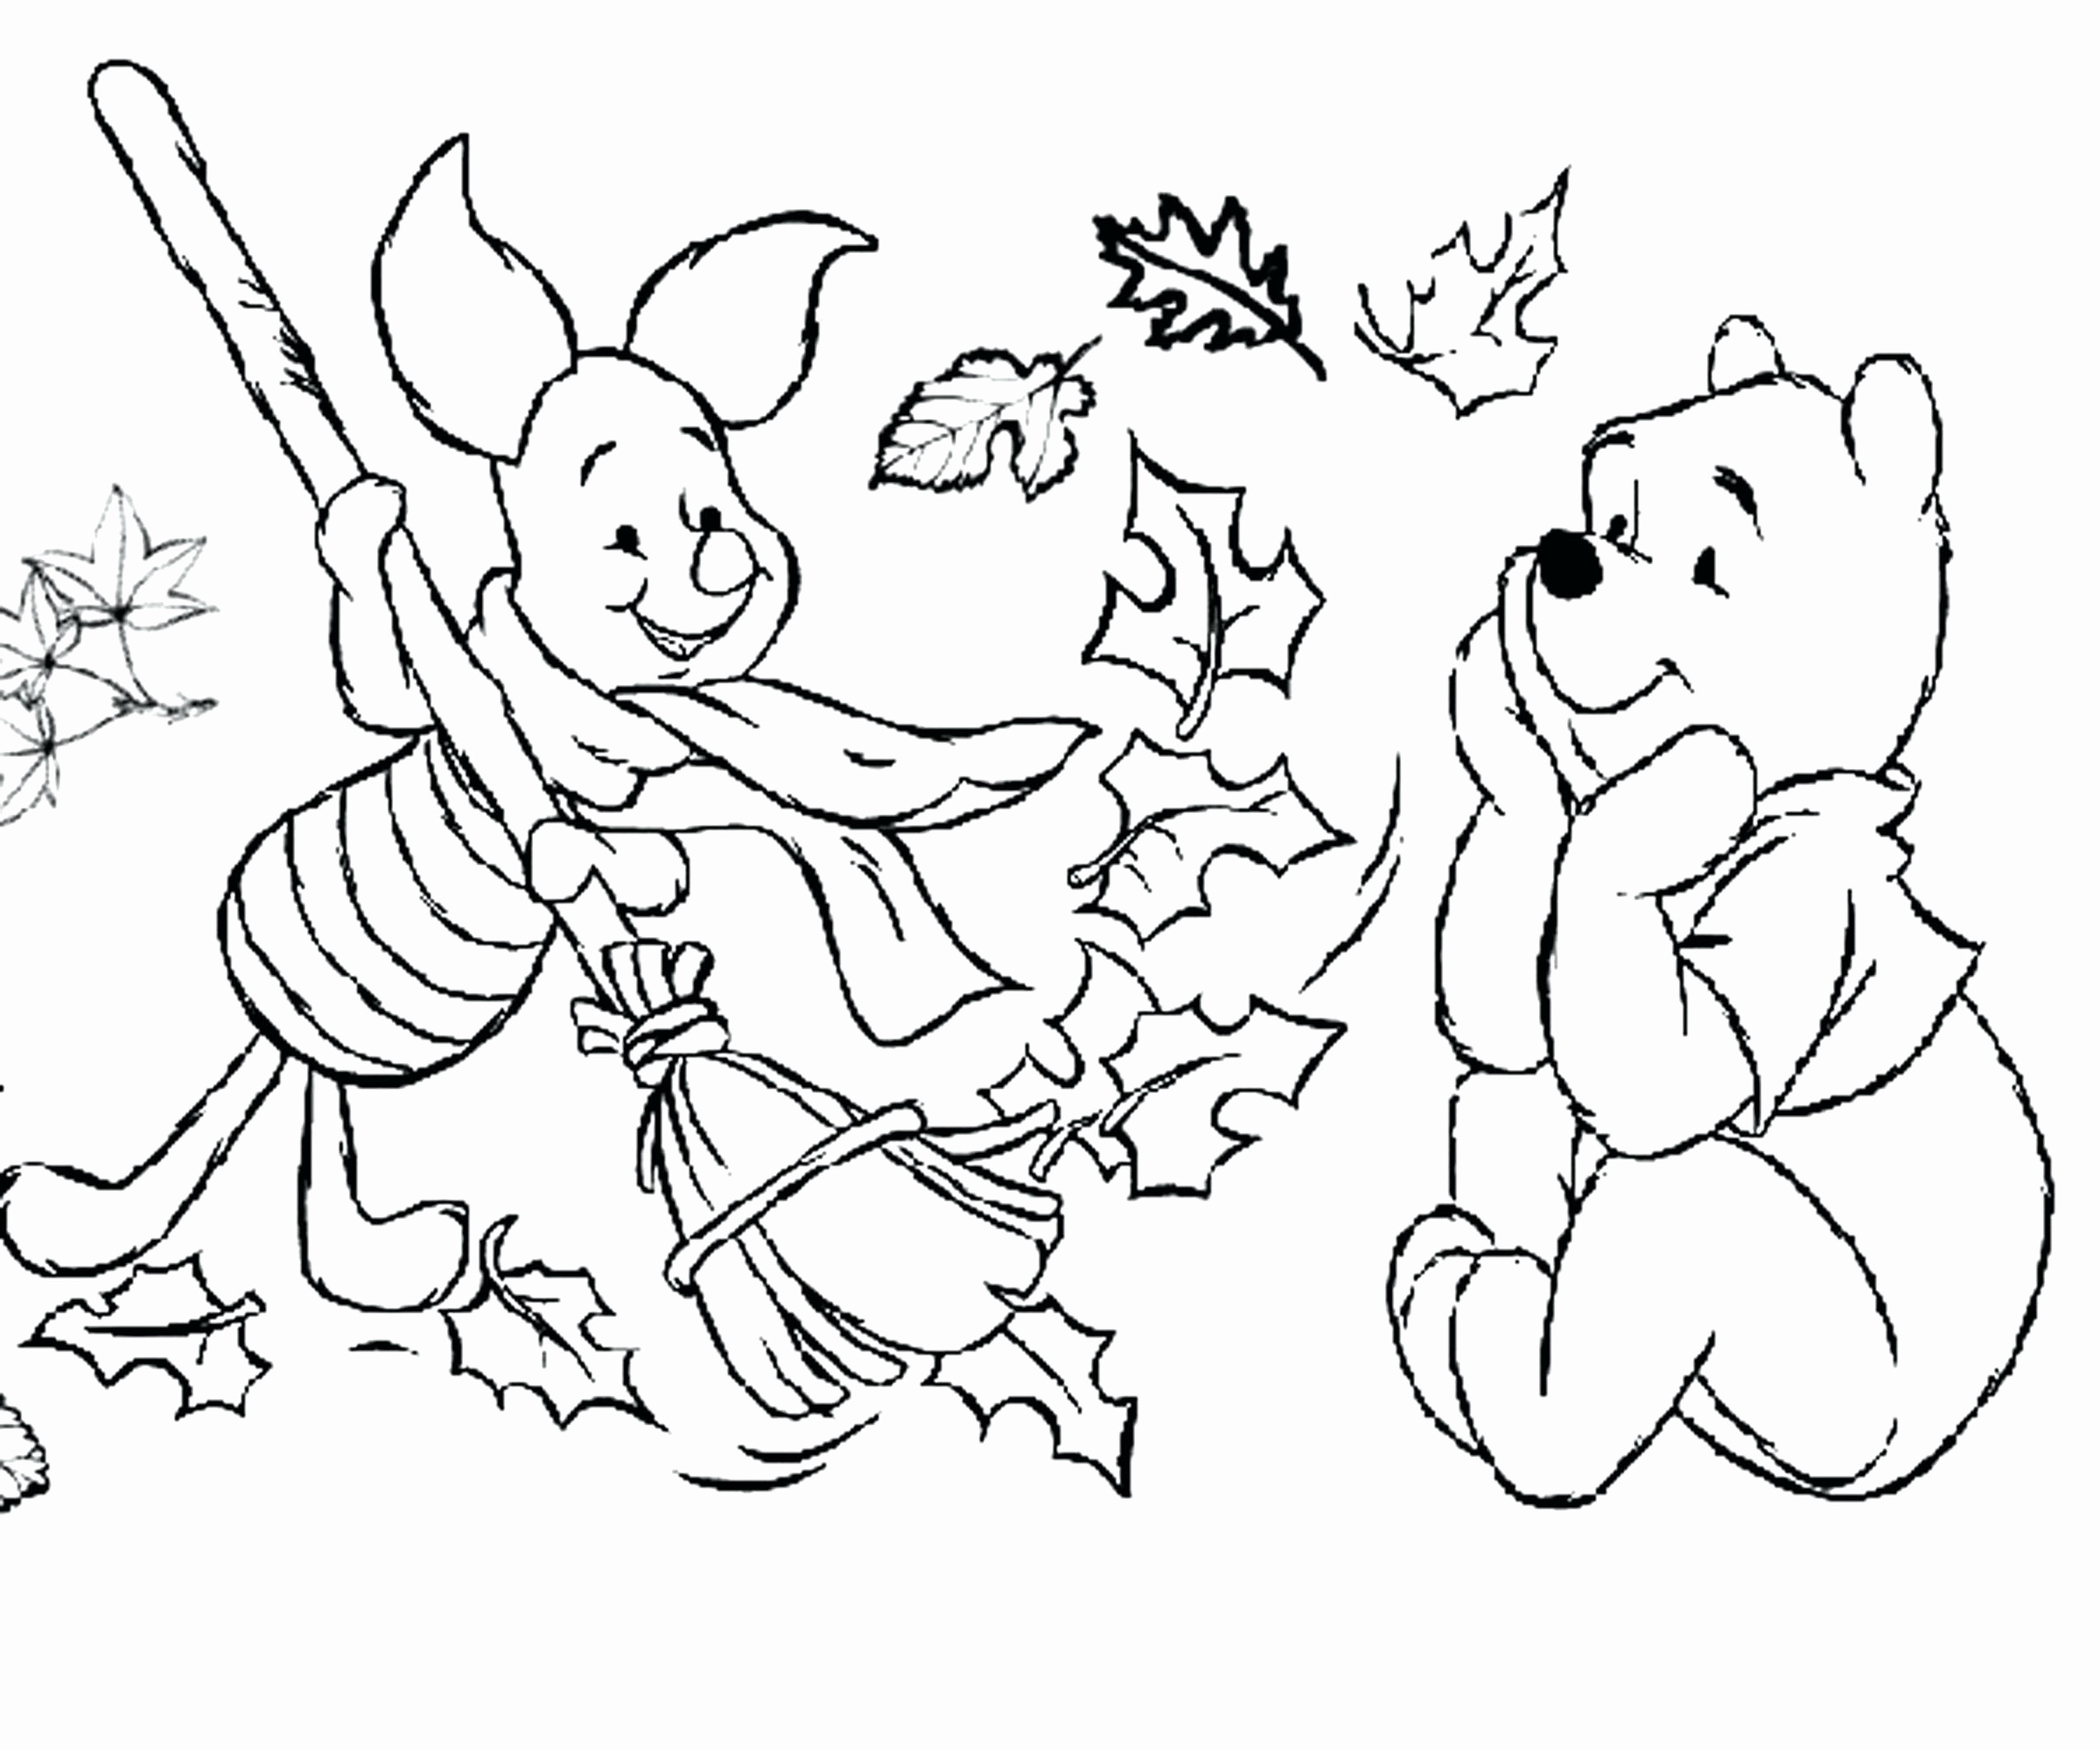 Curious George Coloring Pages - Batman Coloring Pages for Kids Coloring Chrsistmas